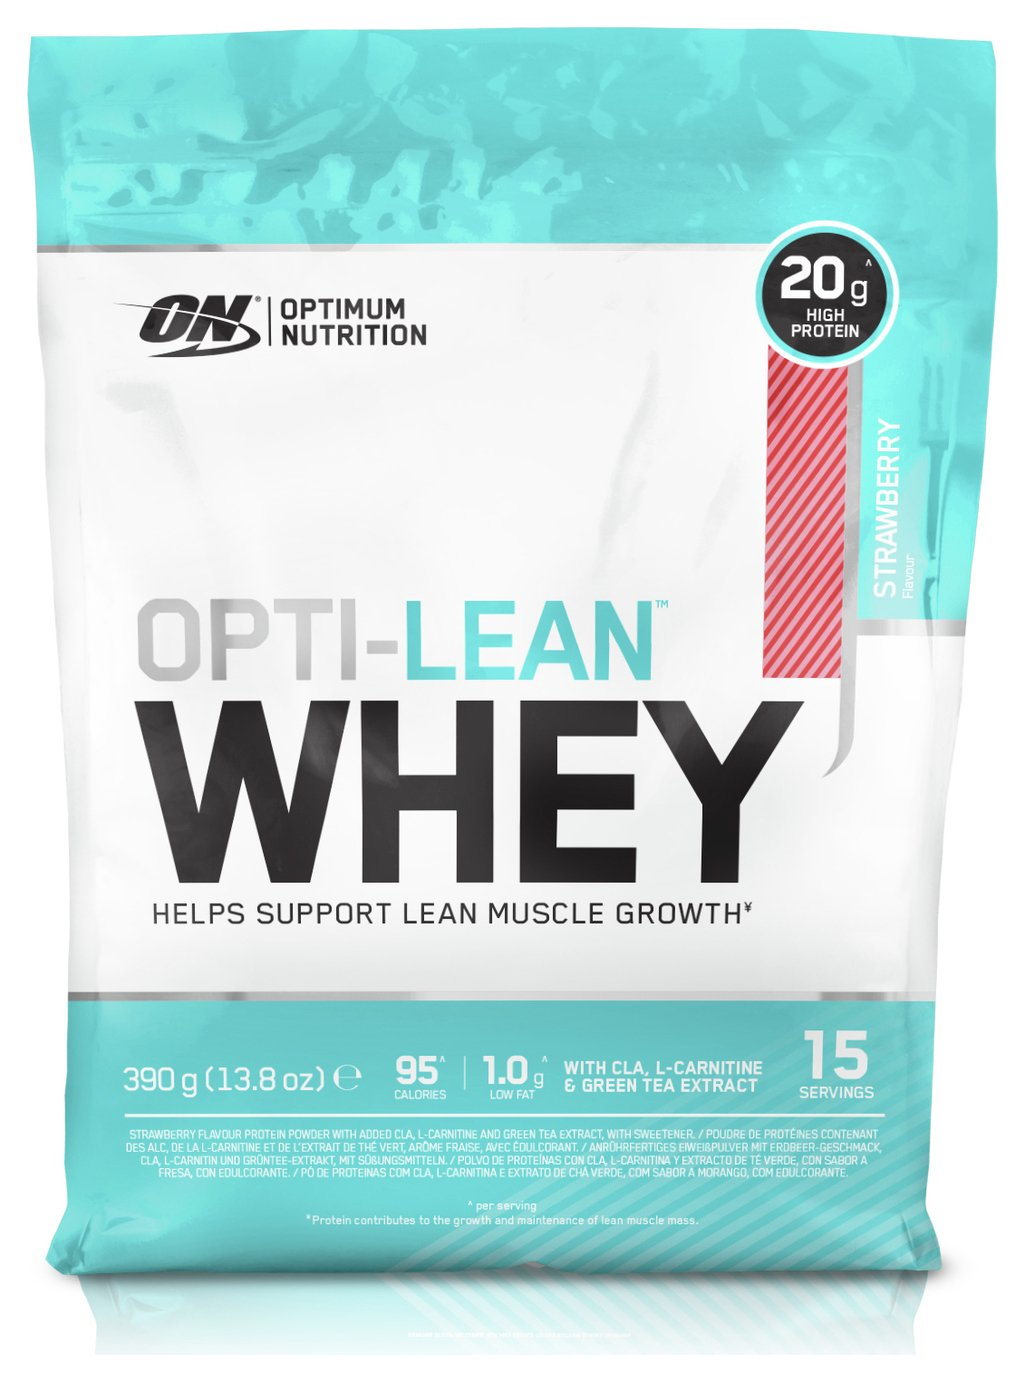 Optimum Nutrition Opti-Lean Whey 780g Protein Shake